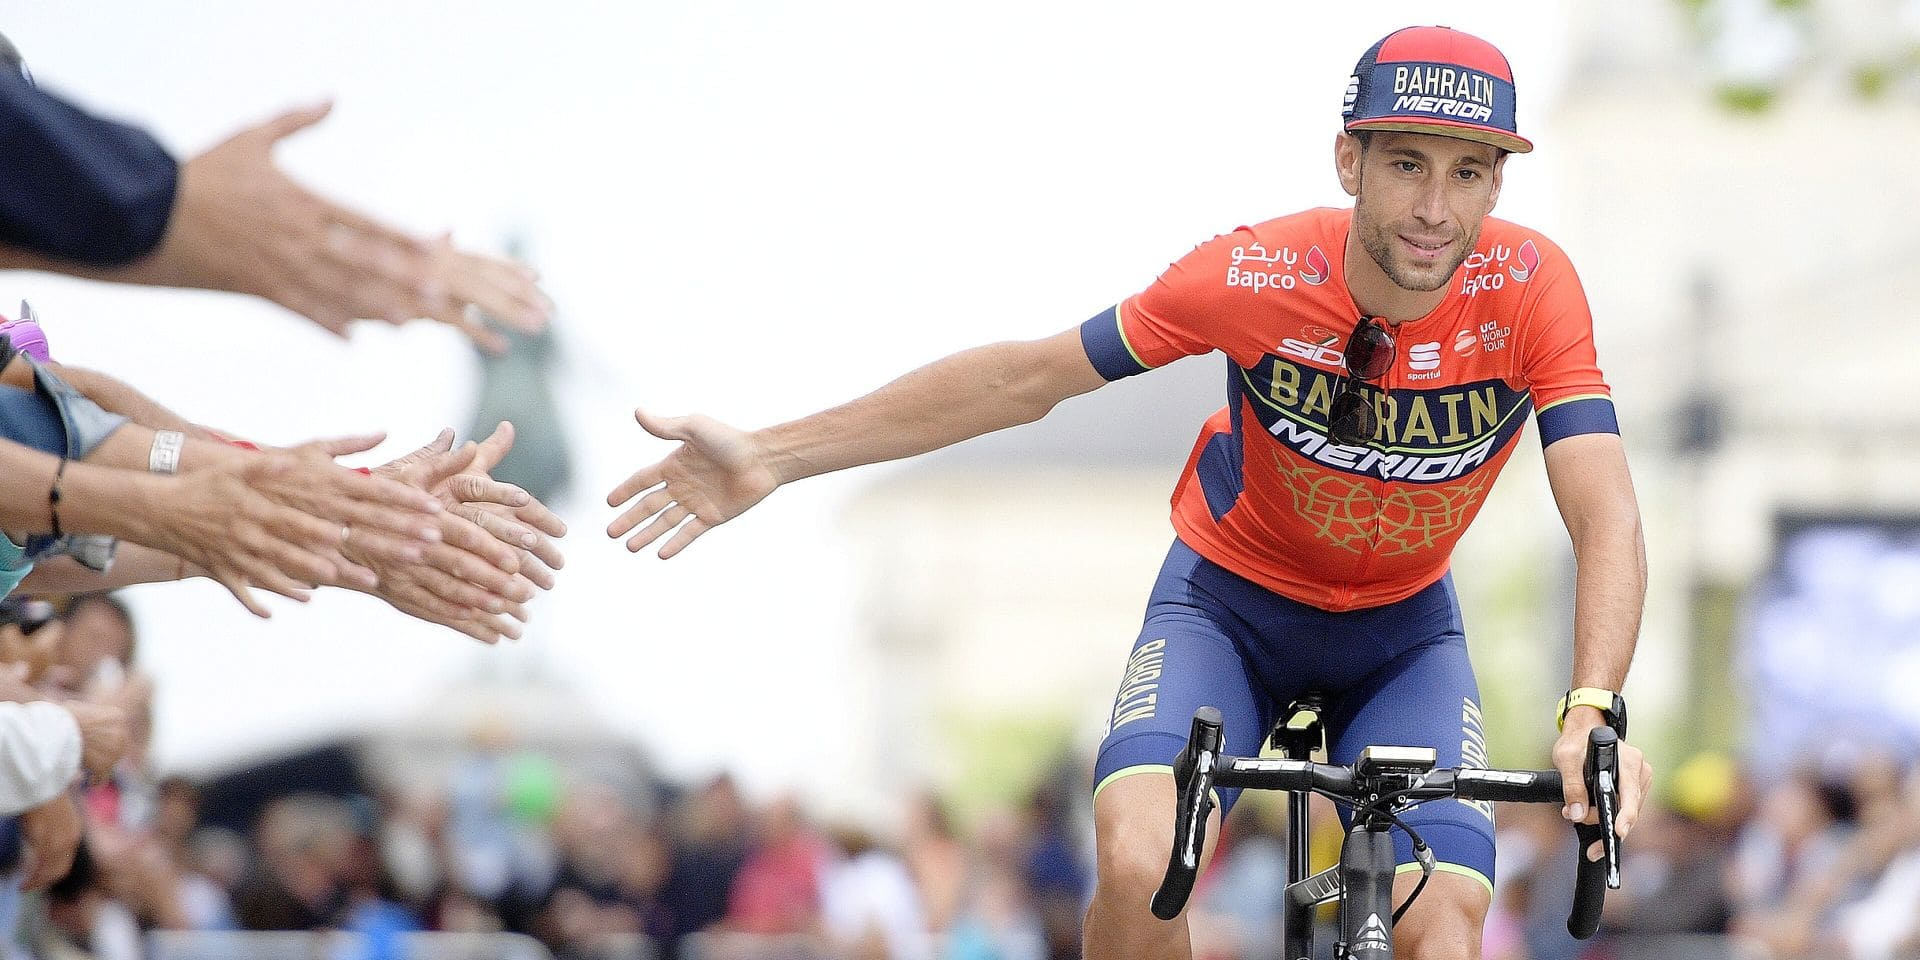 Italian Vincenzo Nibali of Bahrain-Merida pictured during the team presentation of the 105th edition of the Tour de France cycling race, in La-Roche-sur-Yon, France, Thursday 05 July 2018. This year's Tour de France takes place from July 7th to July 29th. BELGA PHOTO DAVID STOCKMAN